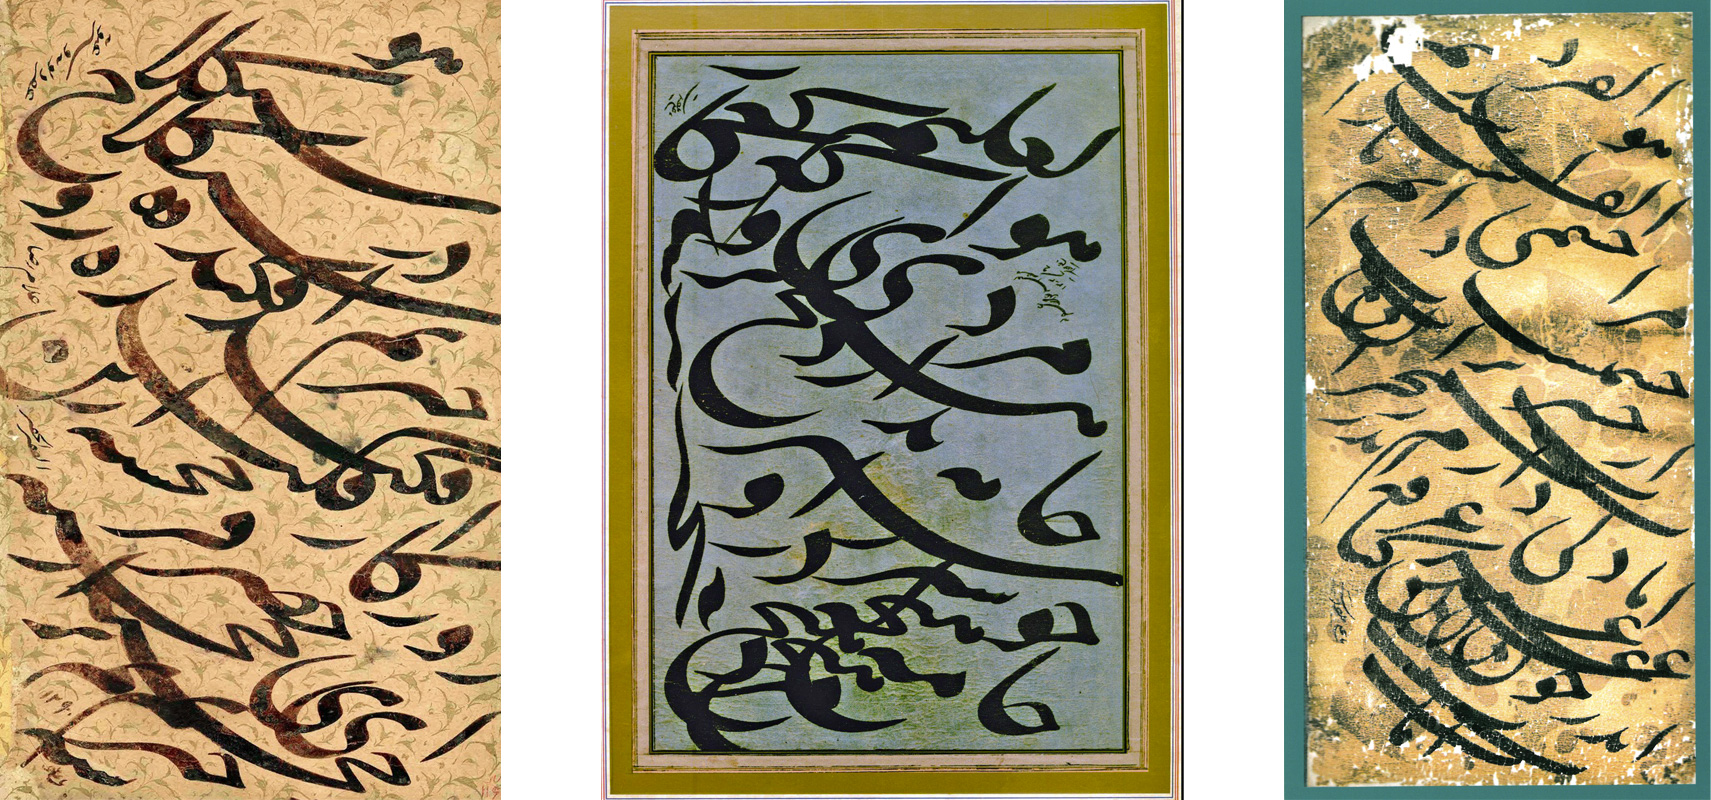 Calligraphy pieces by Mirza Gholamreza Isfahani